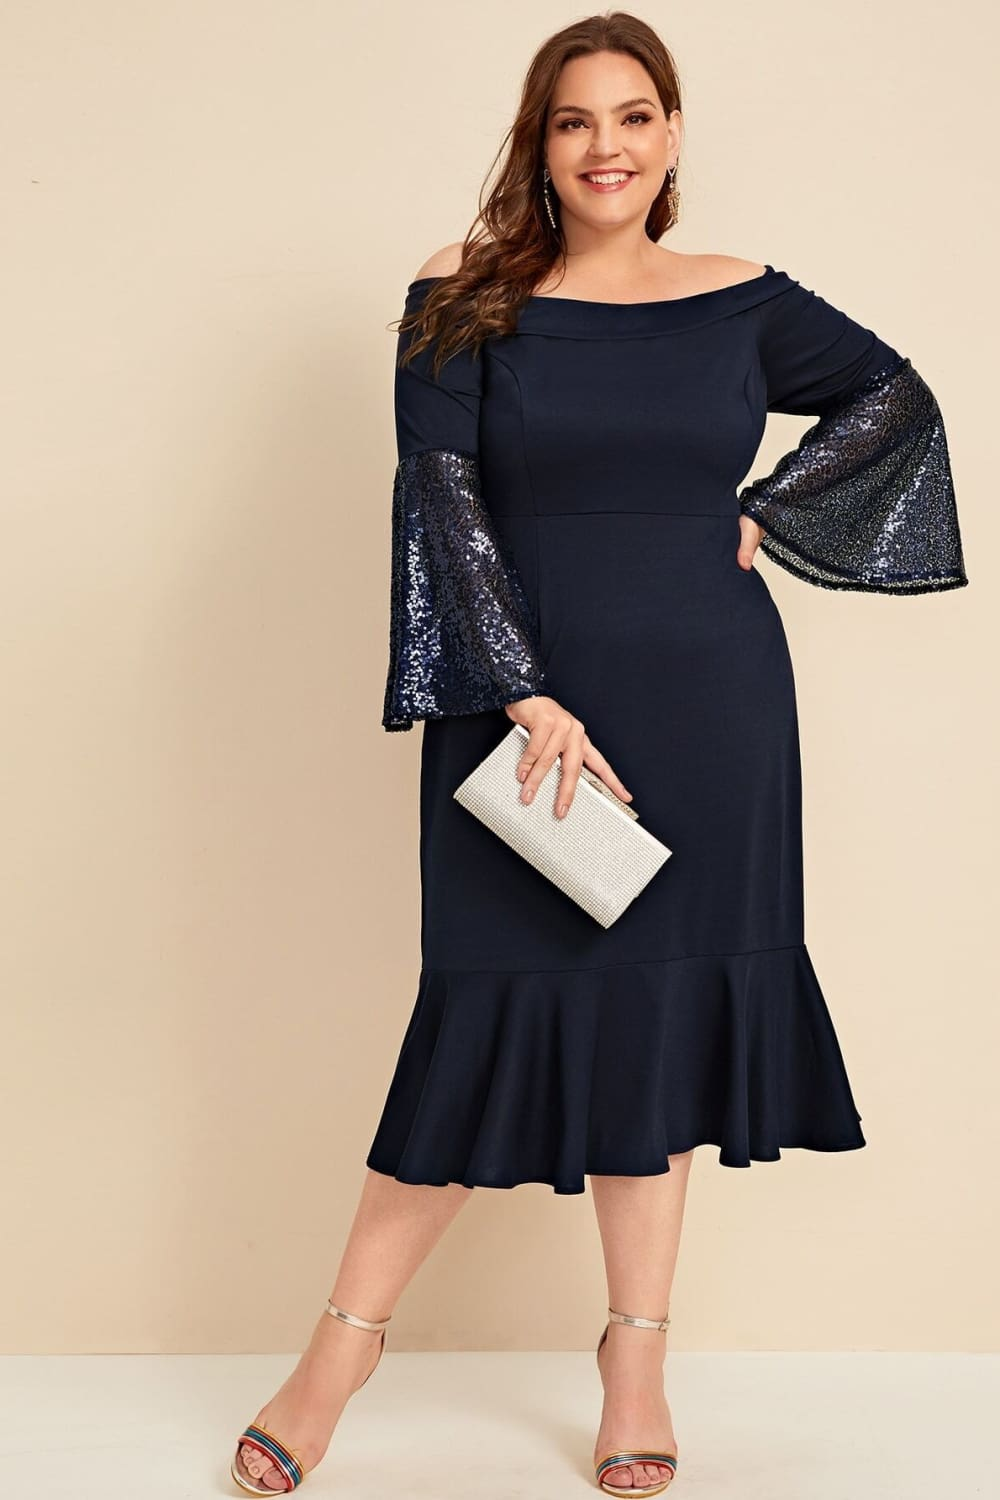 Plus Candlelit Date Navy Sequin Bodycon Dress - Dresses - Evan & Jane